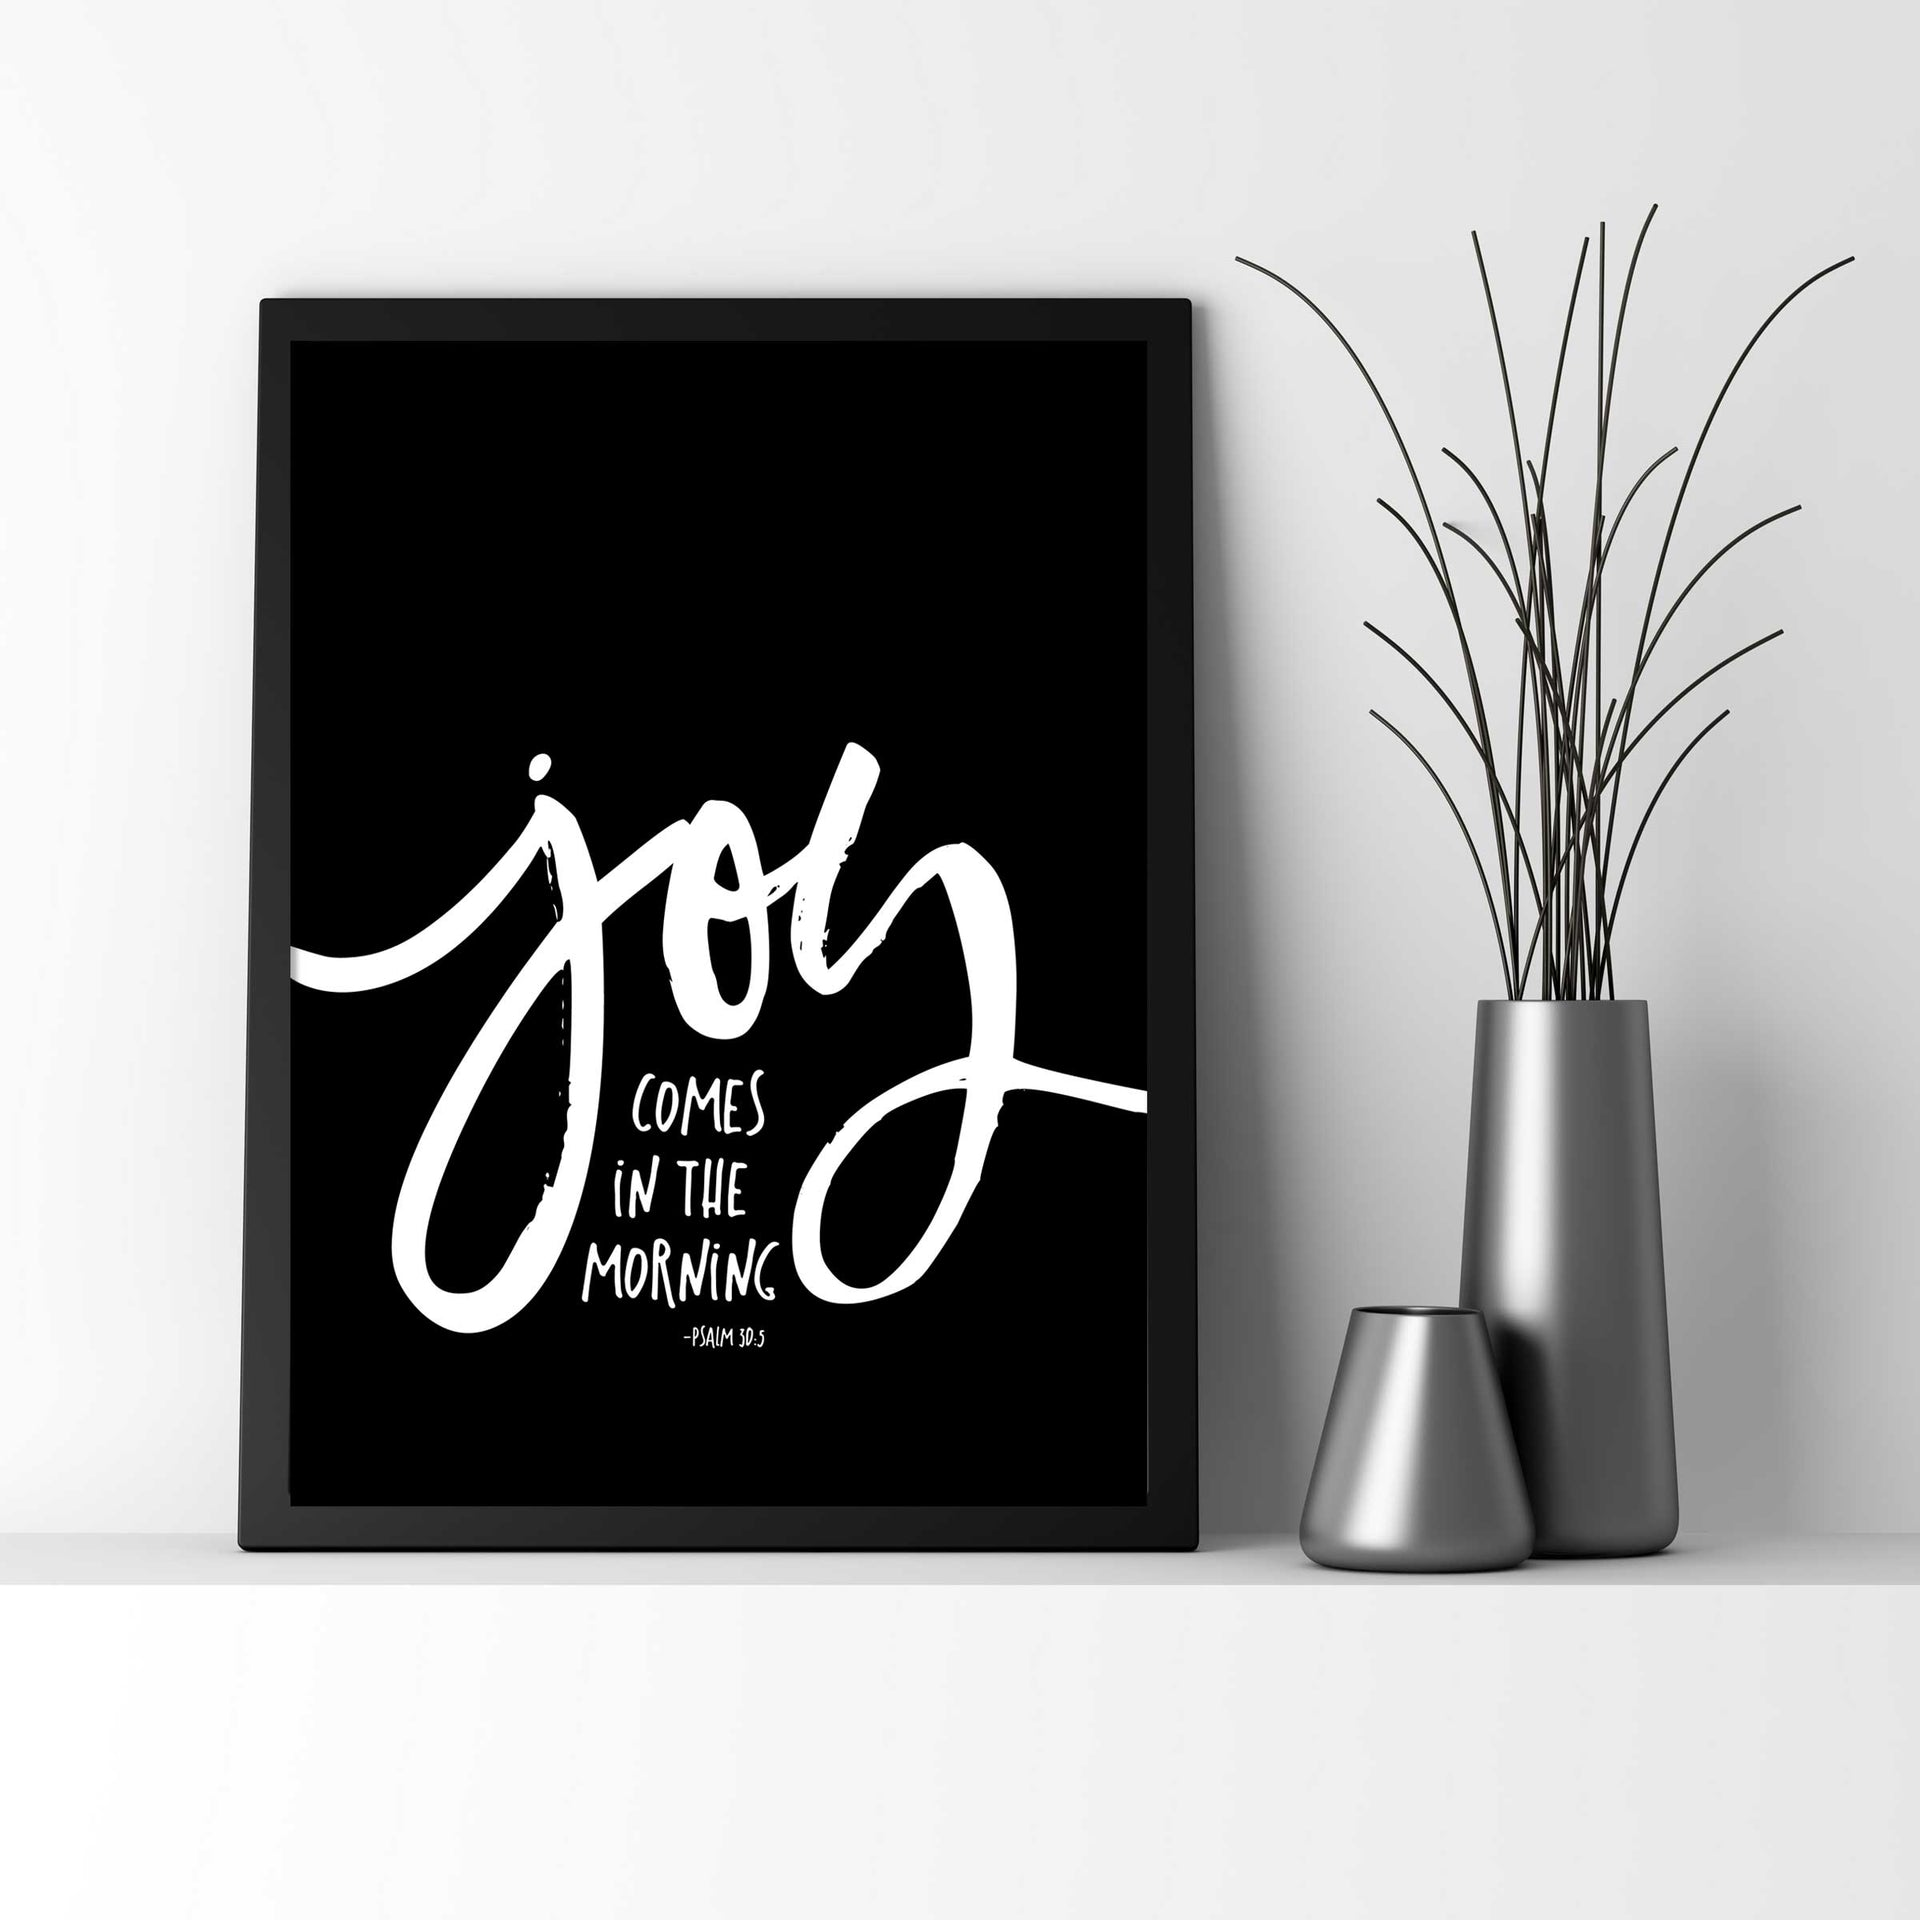 Joy comes in the morning, Psalms 30:5 - Black & White - Wall Decor